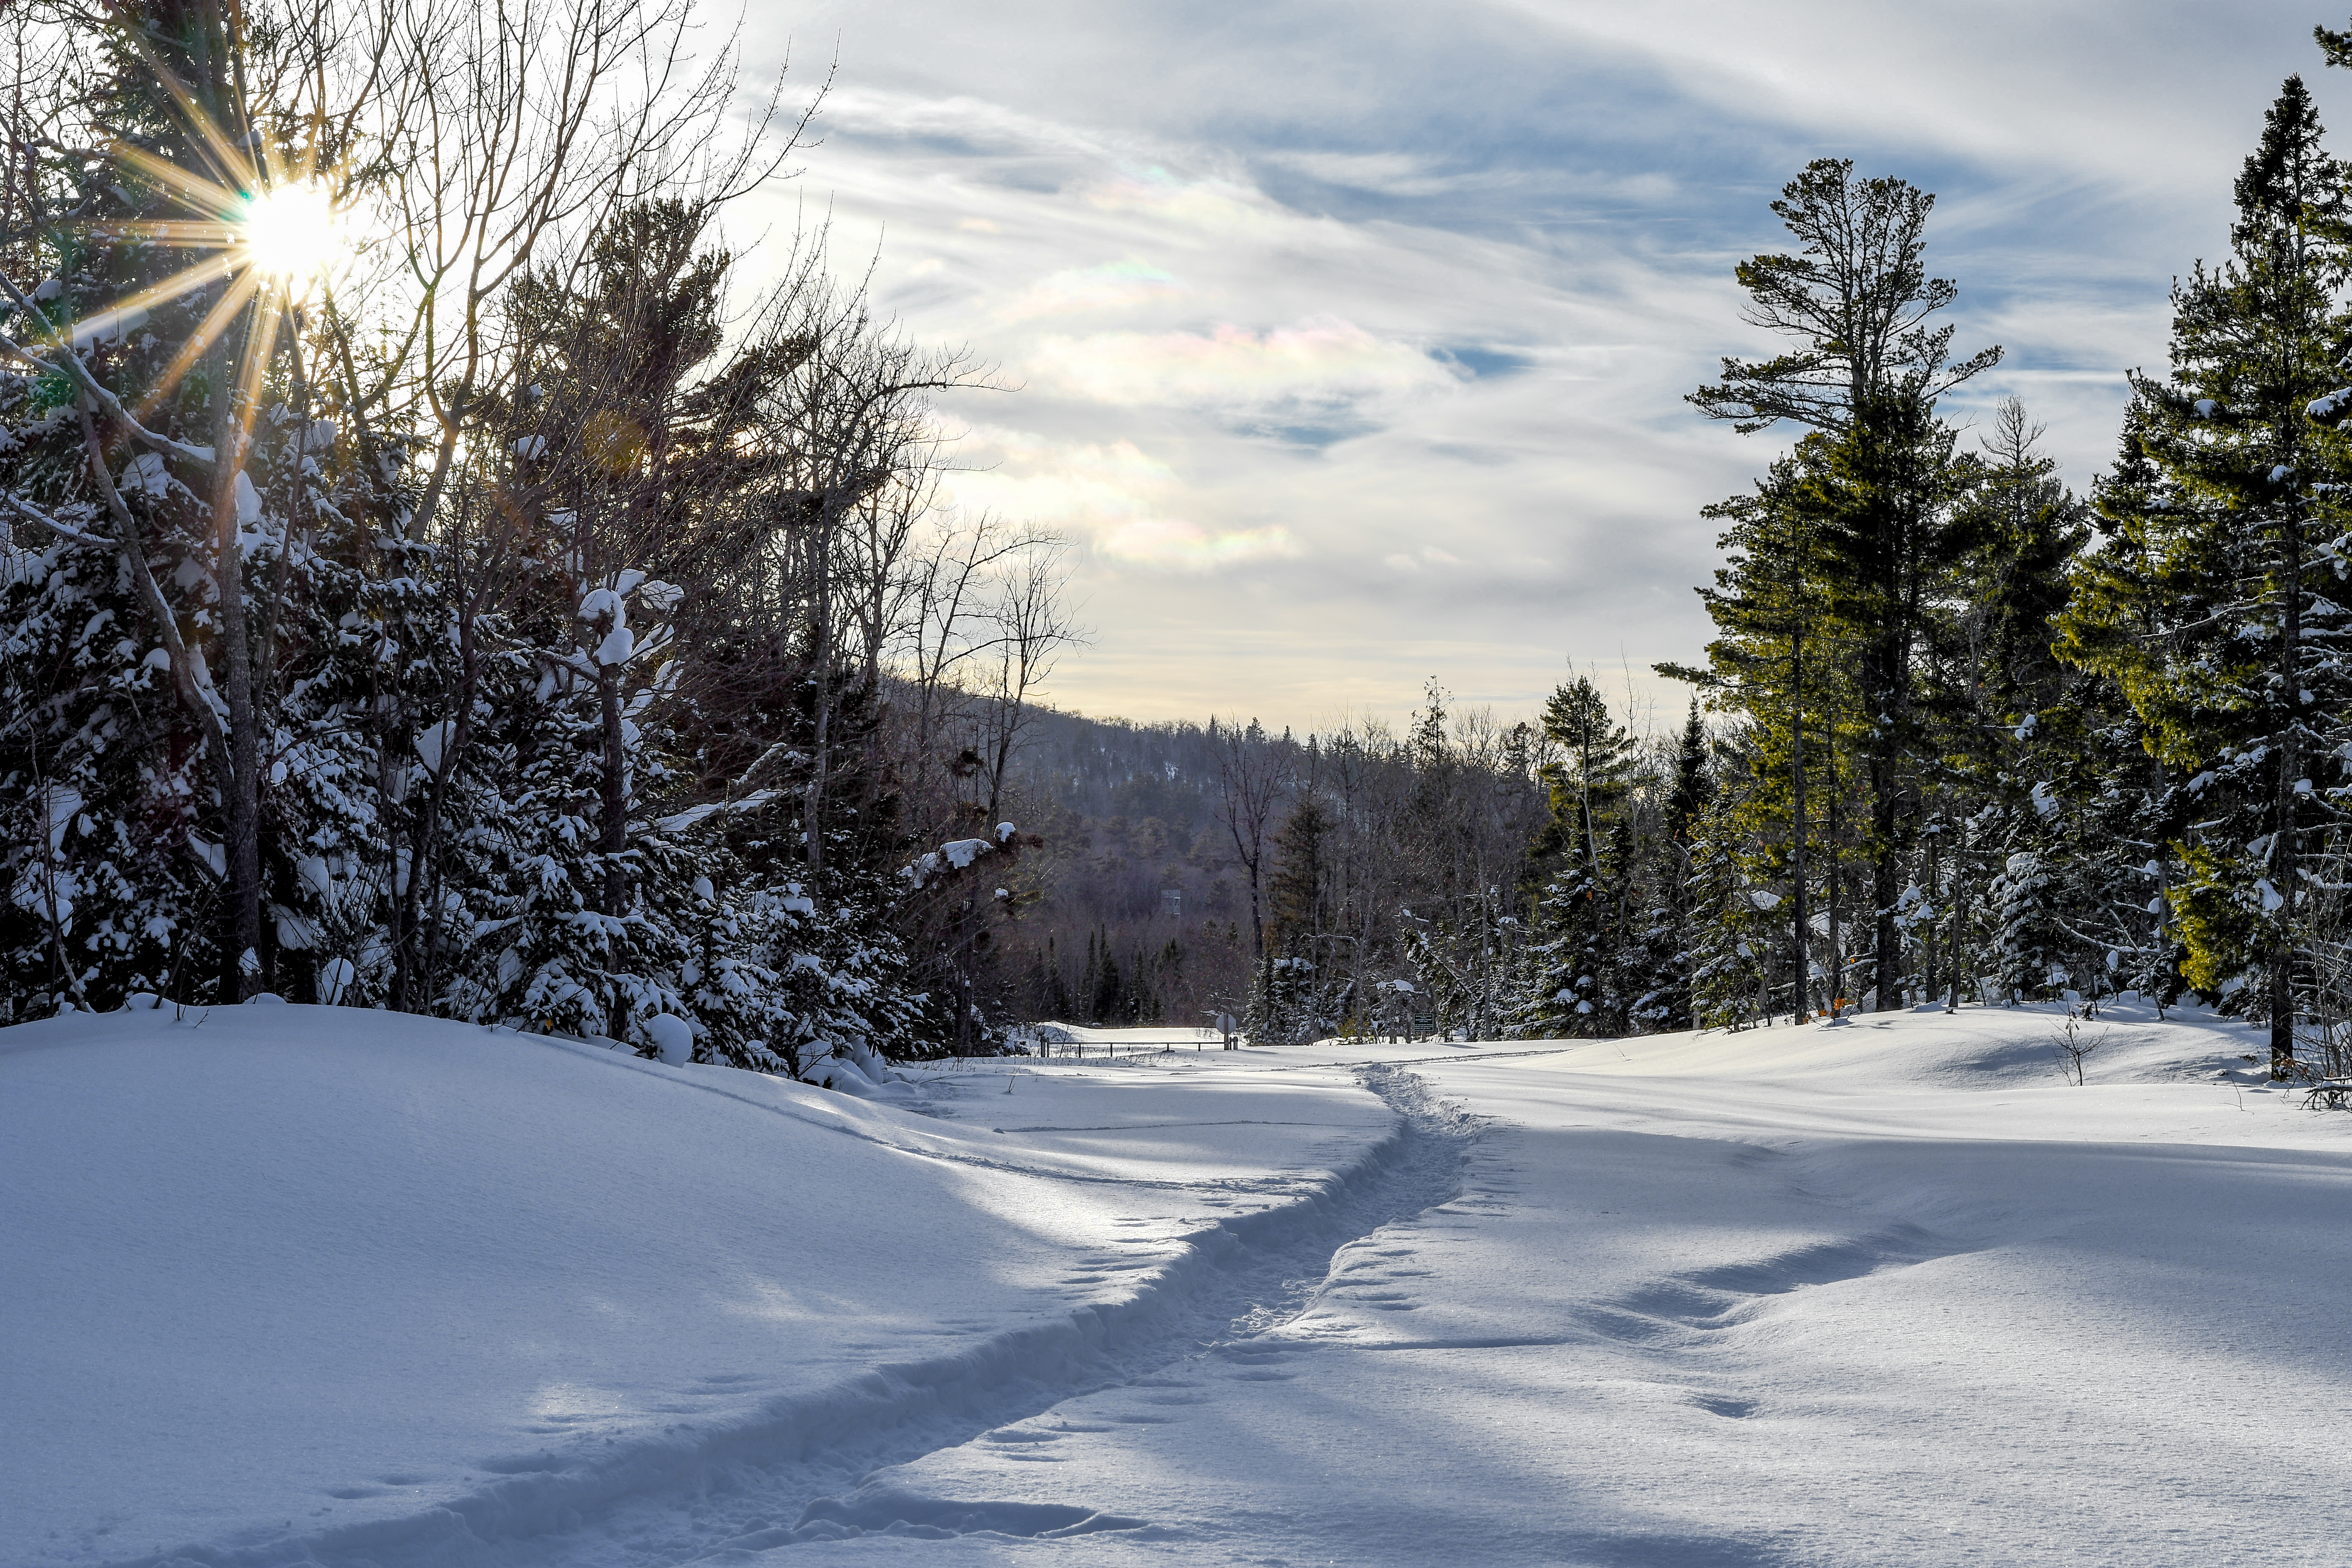 Snowshoe tracks leading through woods on trail to shore.